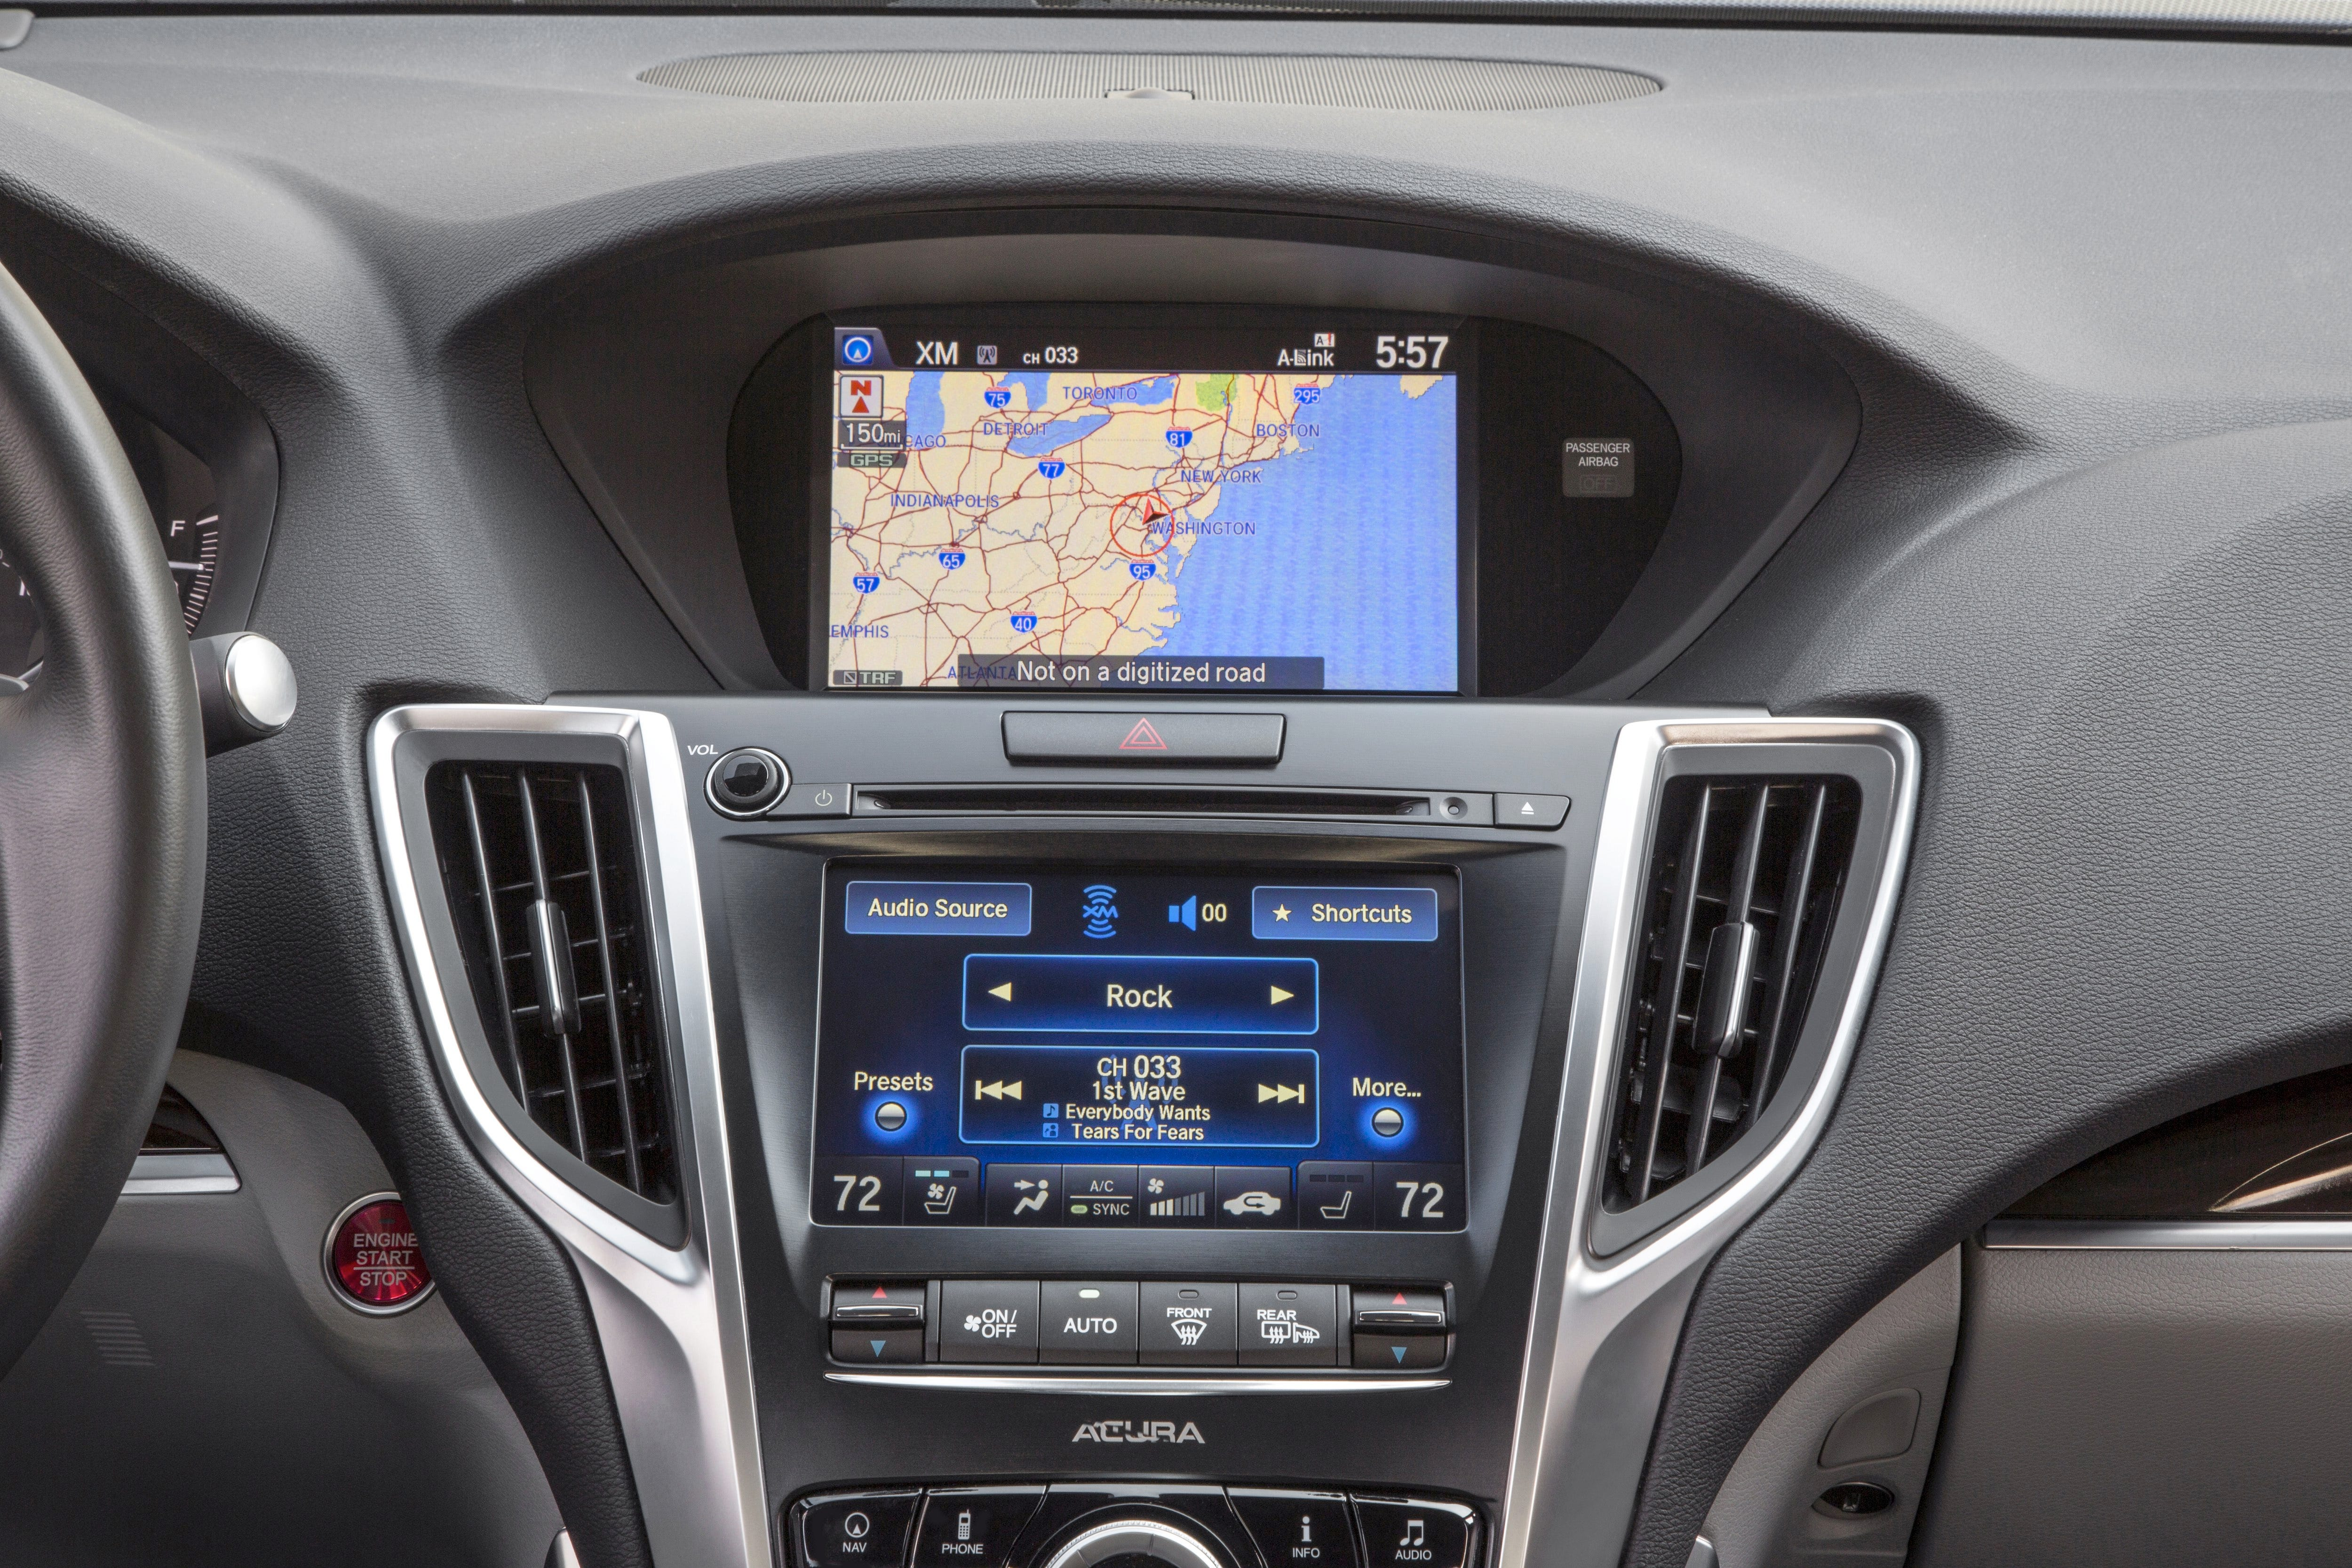 The Main Flaw In The 2015 Acura TLX Is The Dual Screen